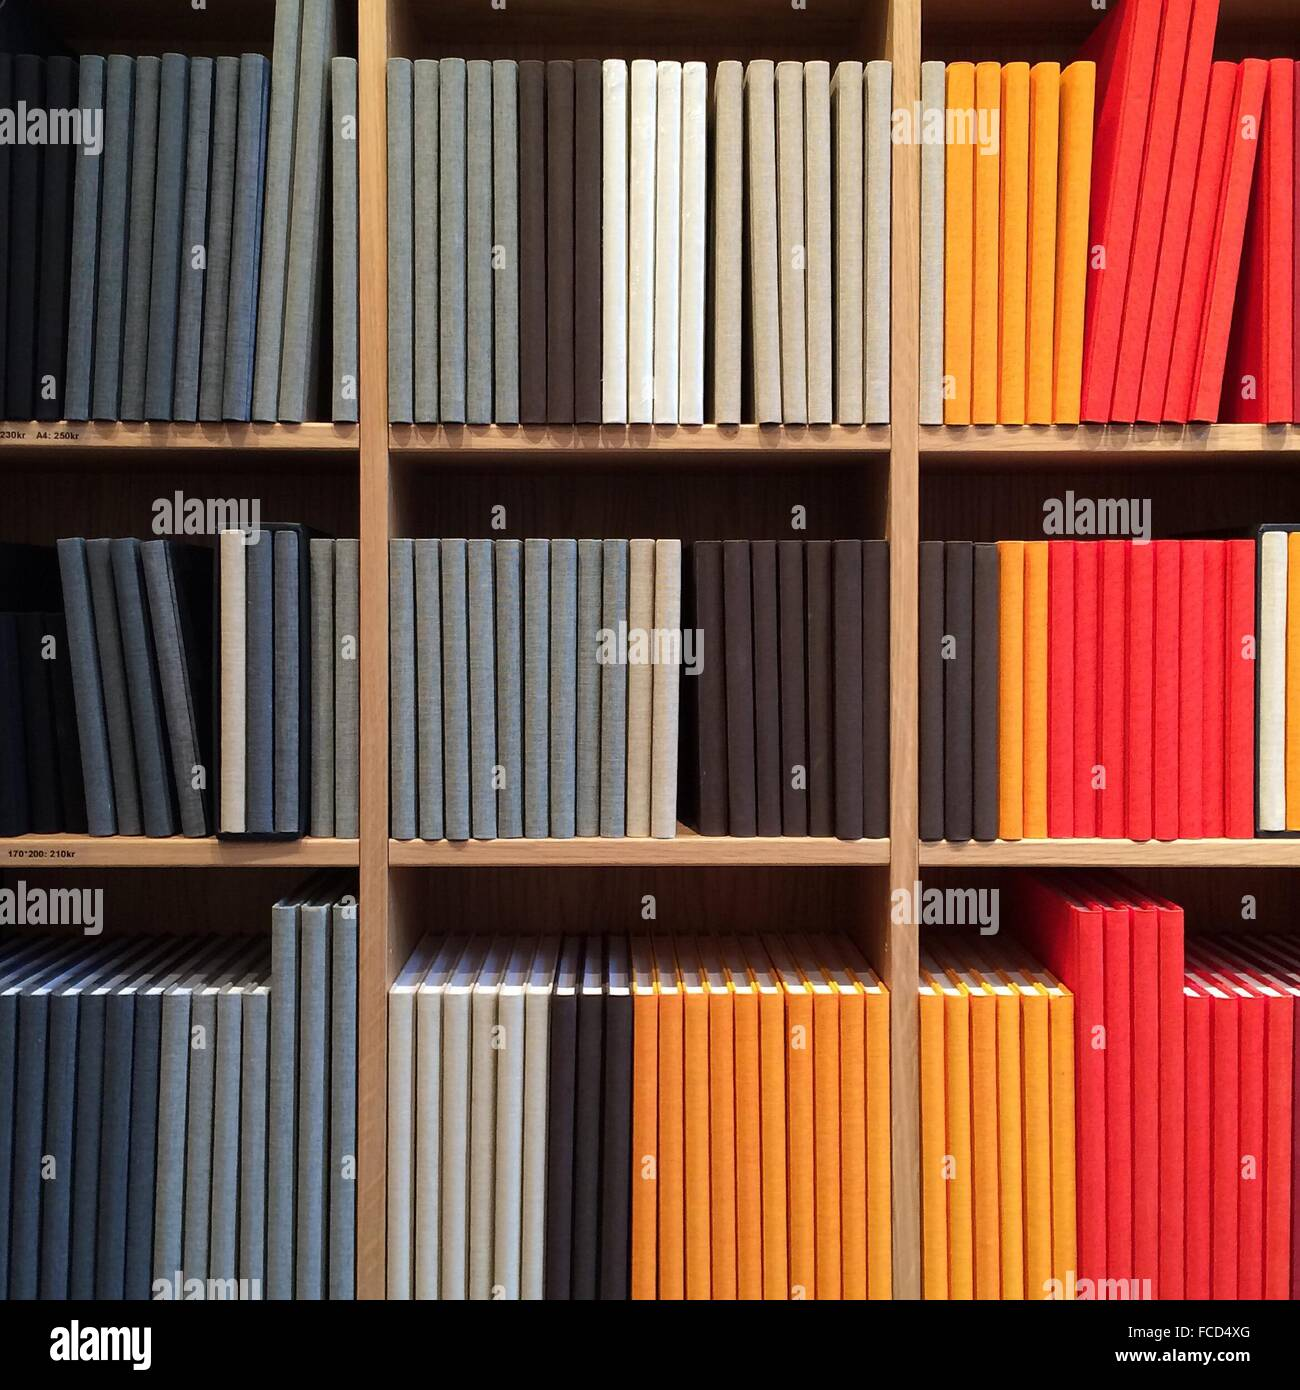 Full-Frameansicht Bücherregal Stockbild